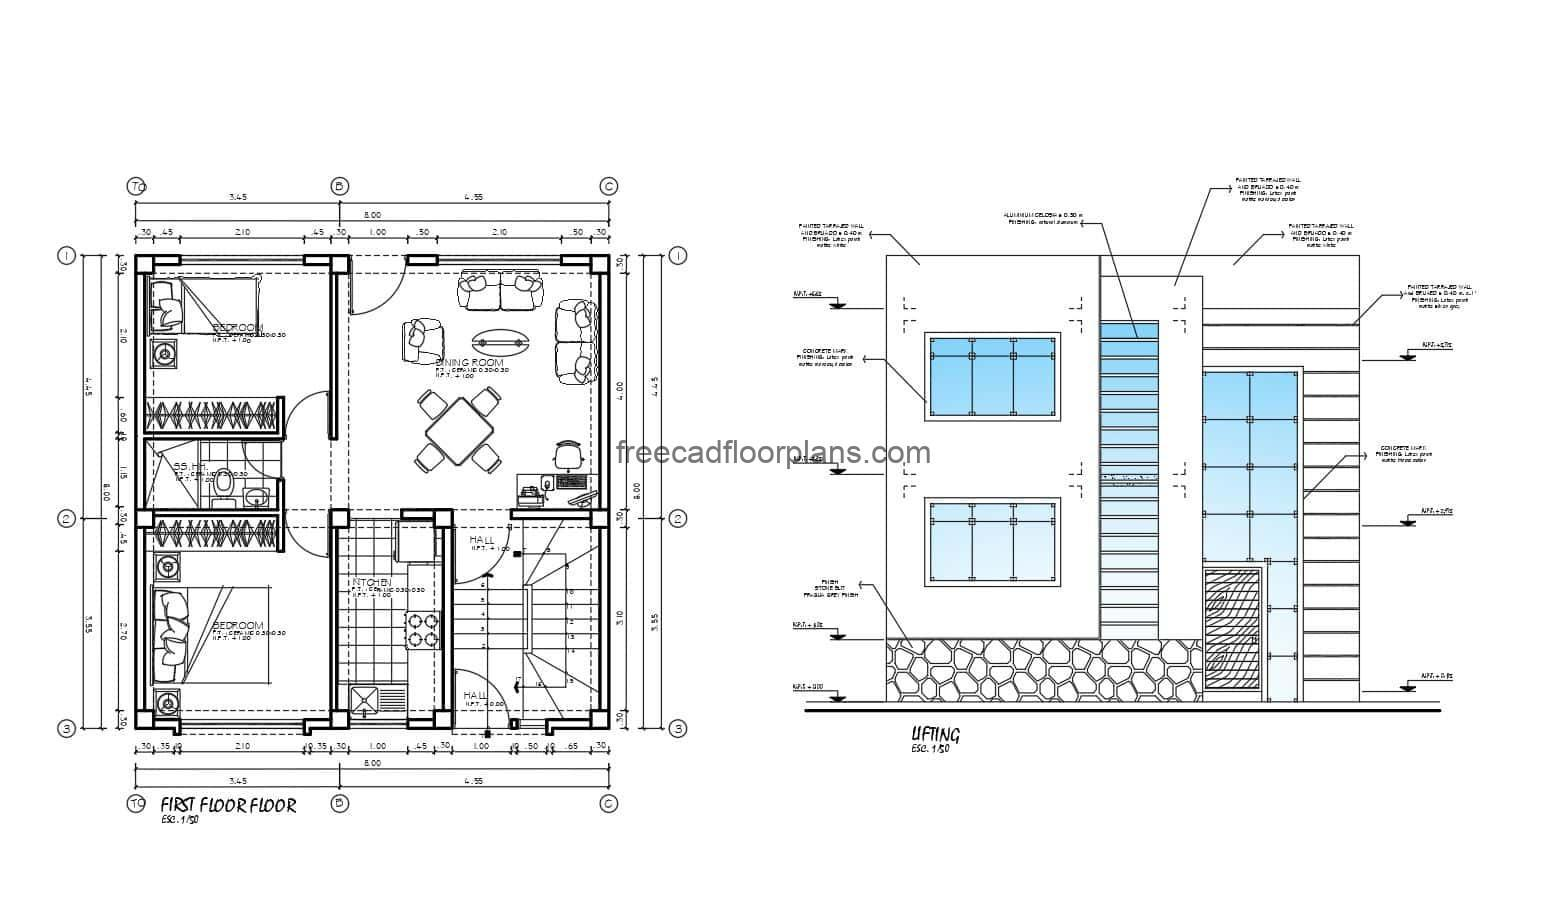 Architectural plan of individual small house on two levels with modern style facade, the basic and small distribution residence has two bedrooms with a shared bathroom, living room, small kitchen and stair block to the other living unit. 2D drawings in AutoCAD DWG format for free download, editable blueprints with dimensions and interior architectural plan with AutoCAD blocks.